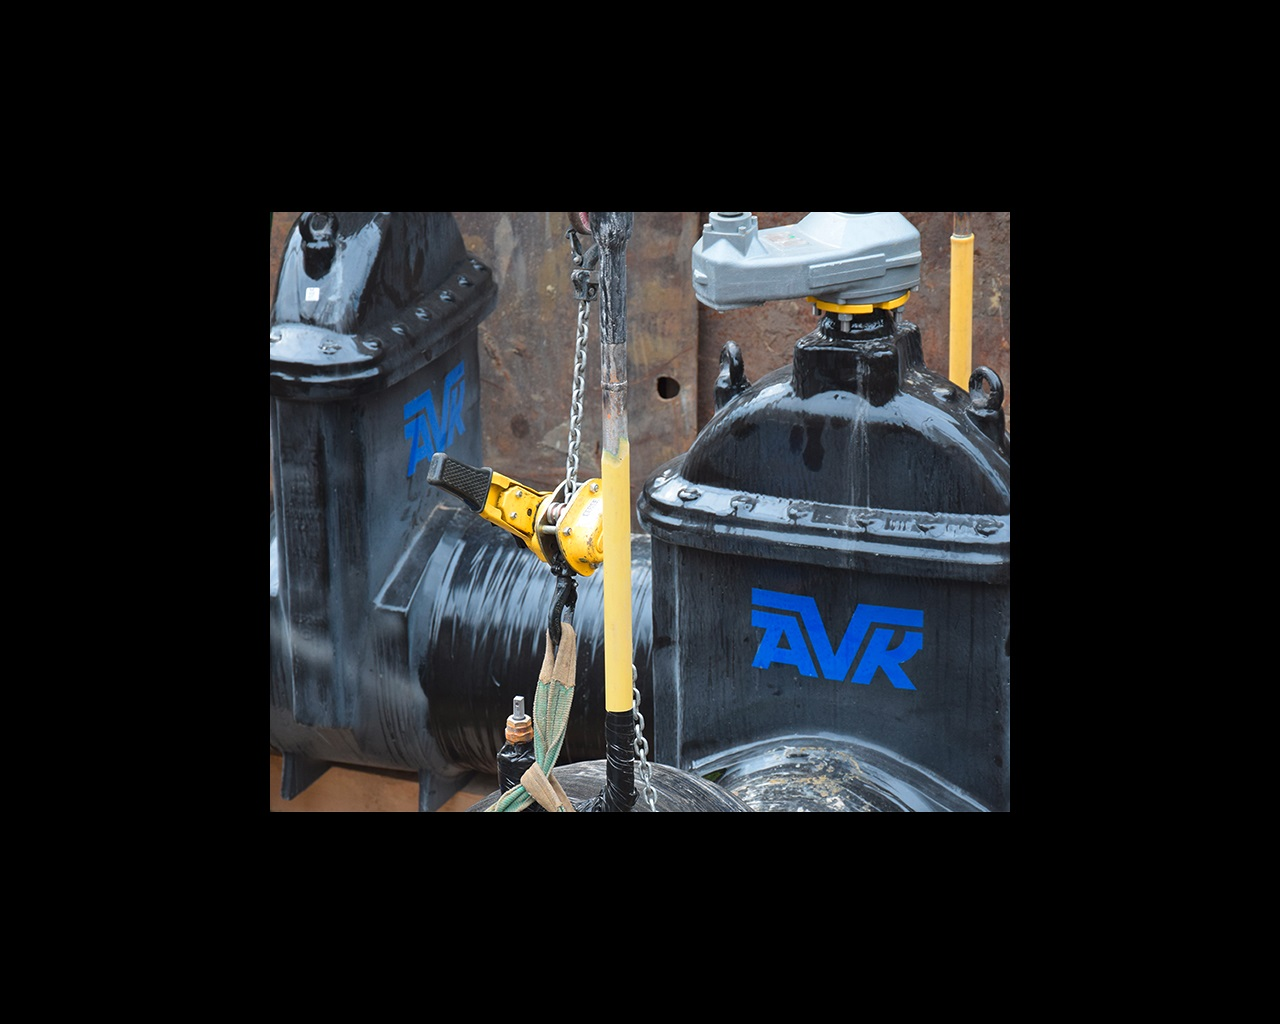 AVK gate valve for gas distribution installed on new gas pipe in Antwerp, Belgium